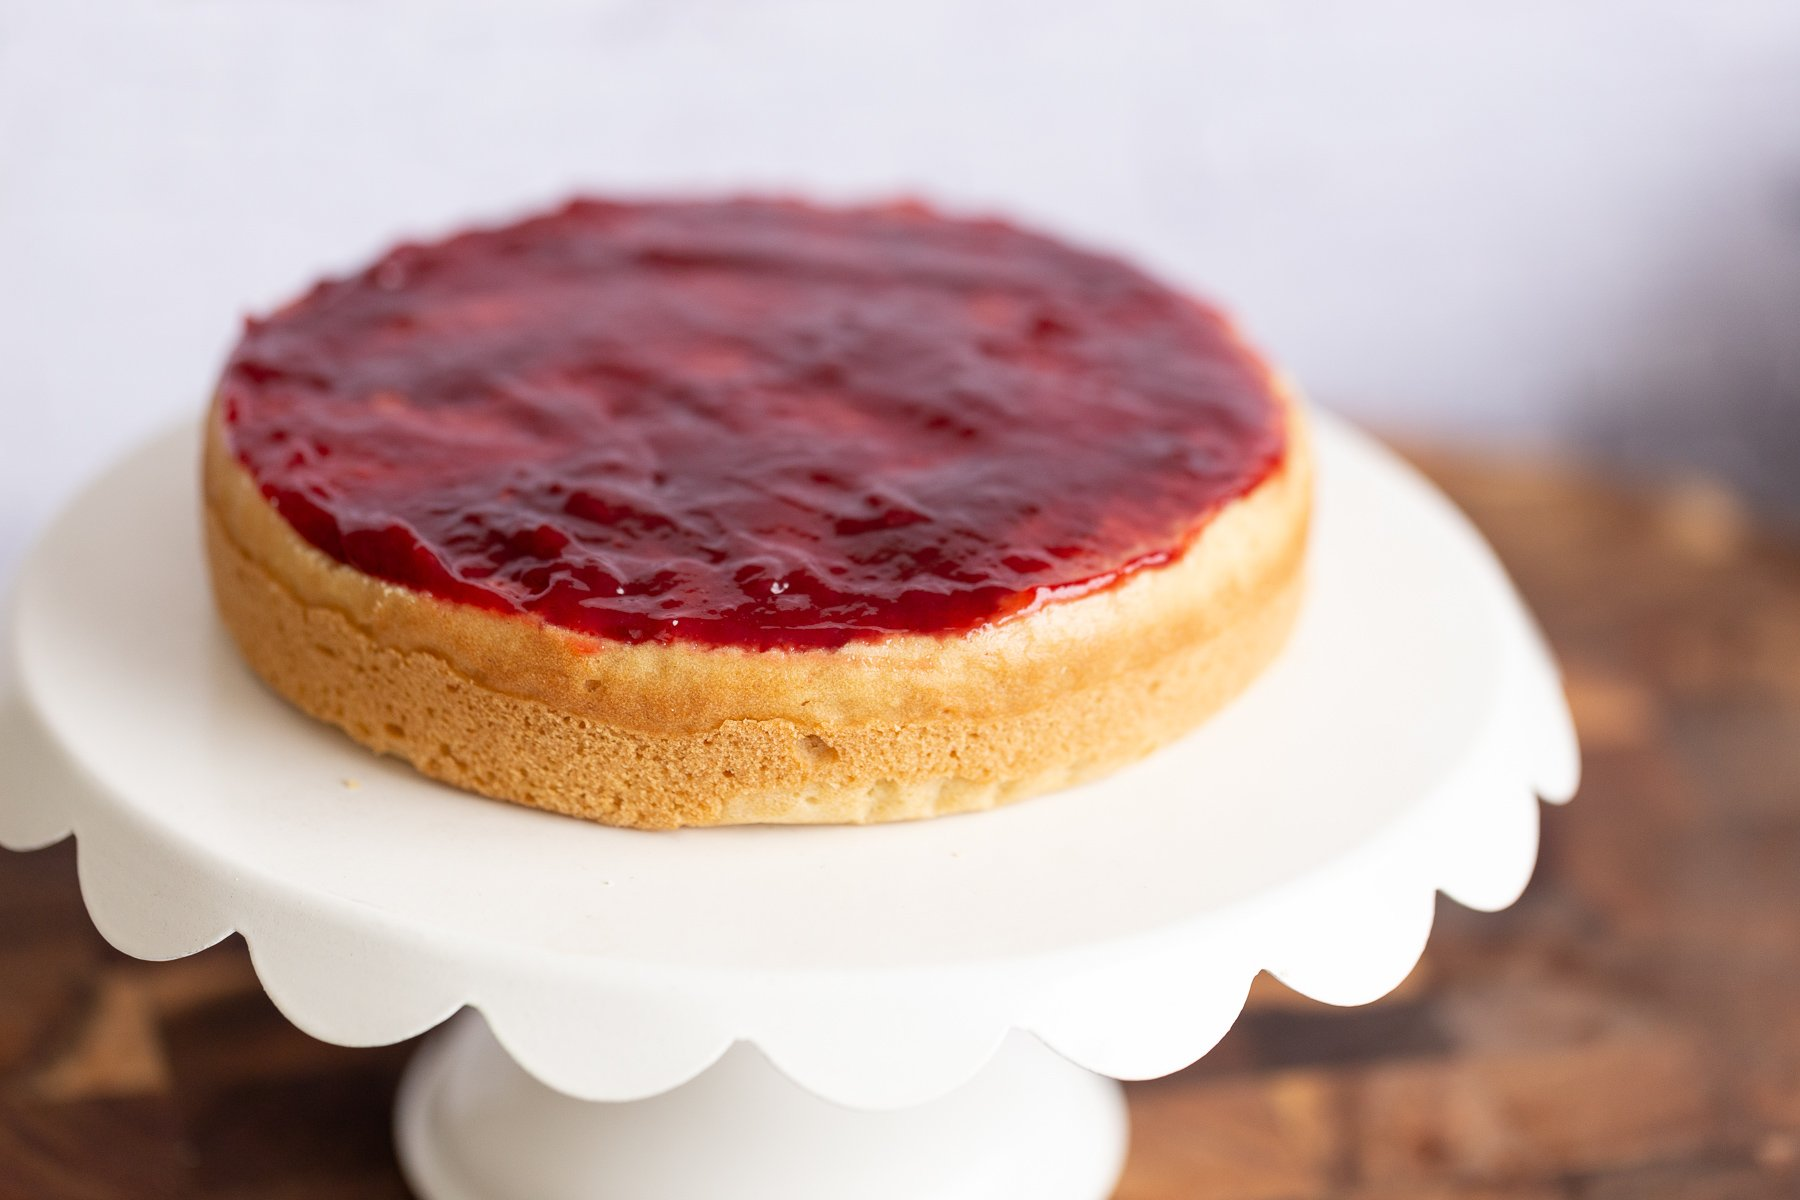 vegan sponge cake topped with raspberry jam